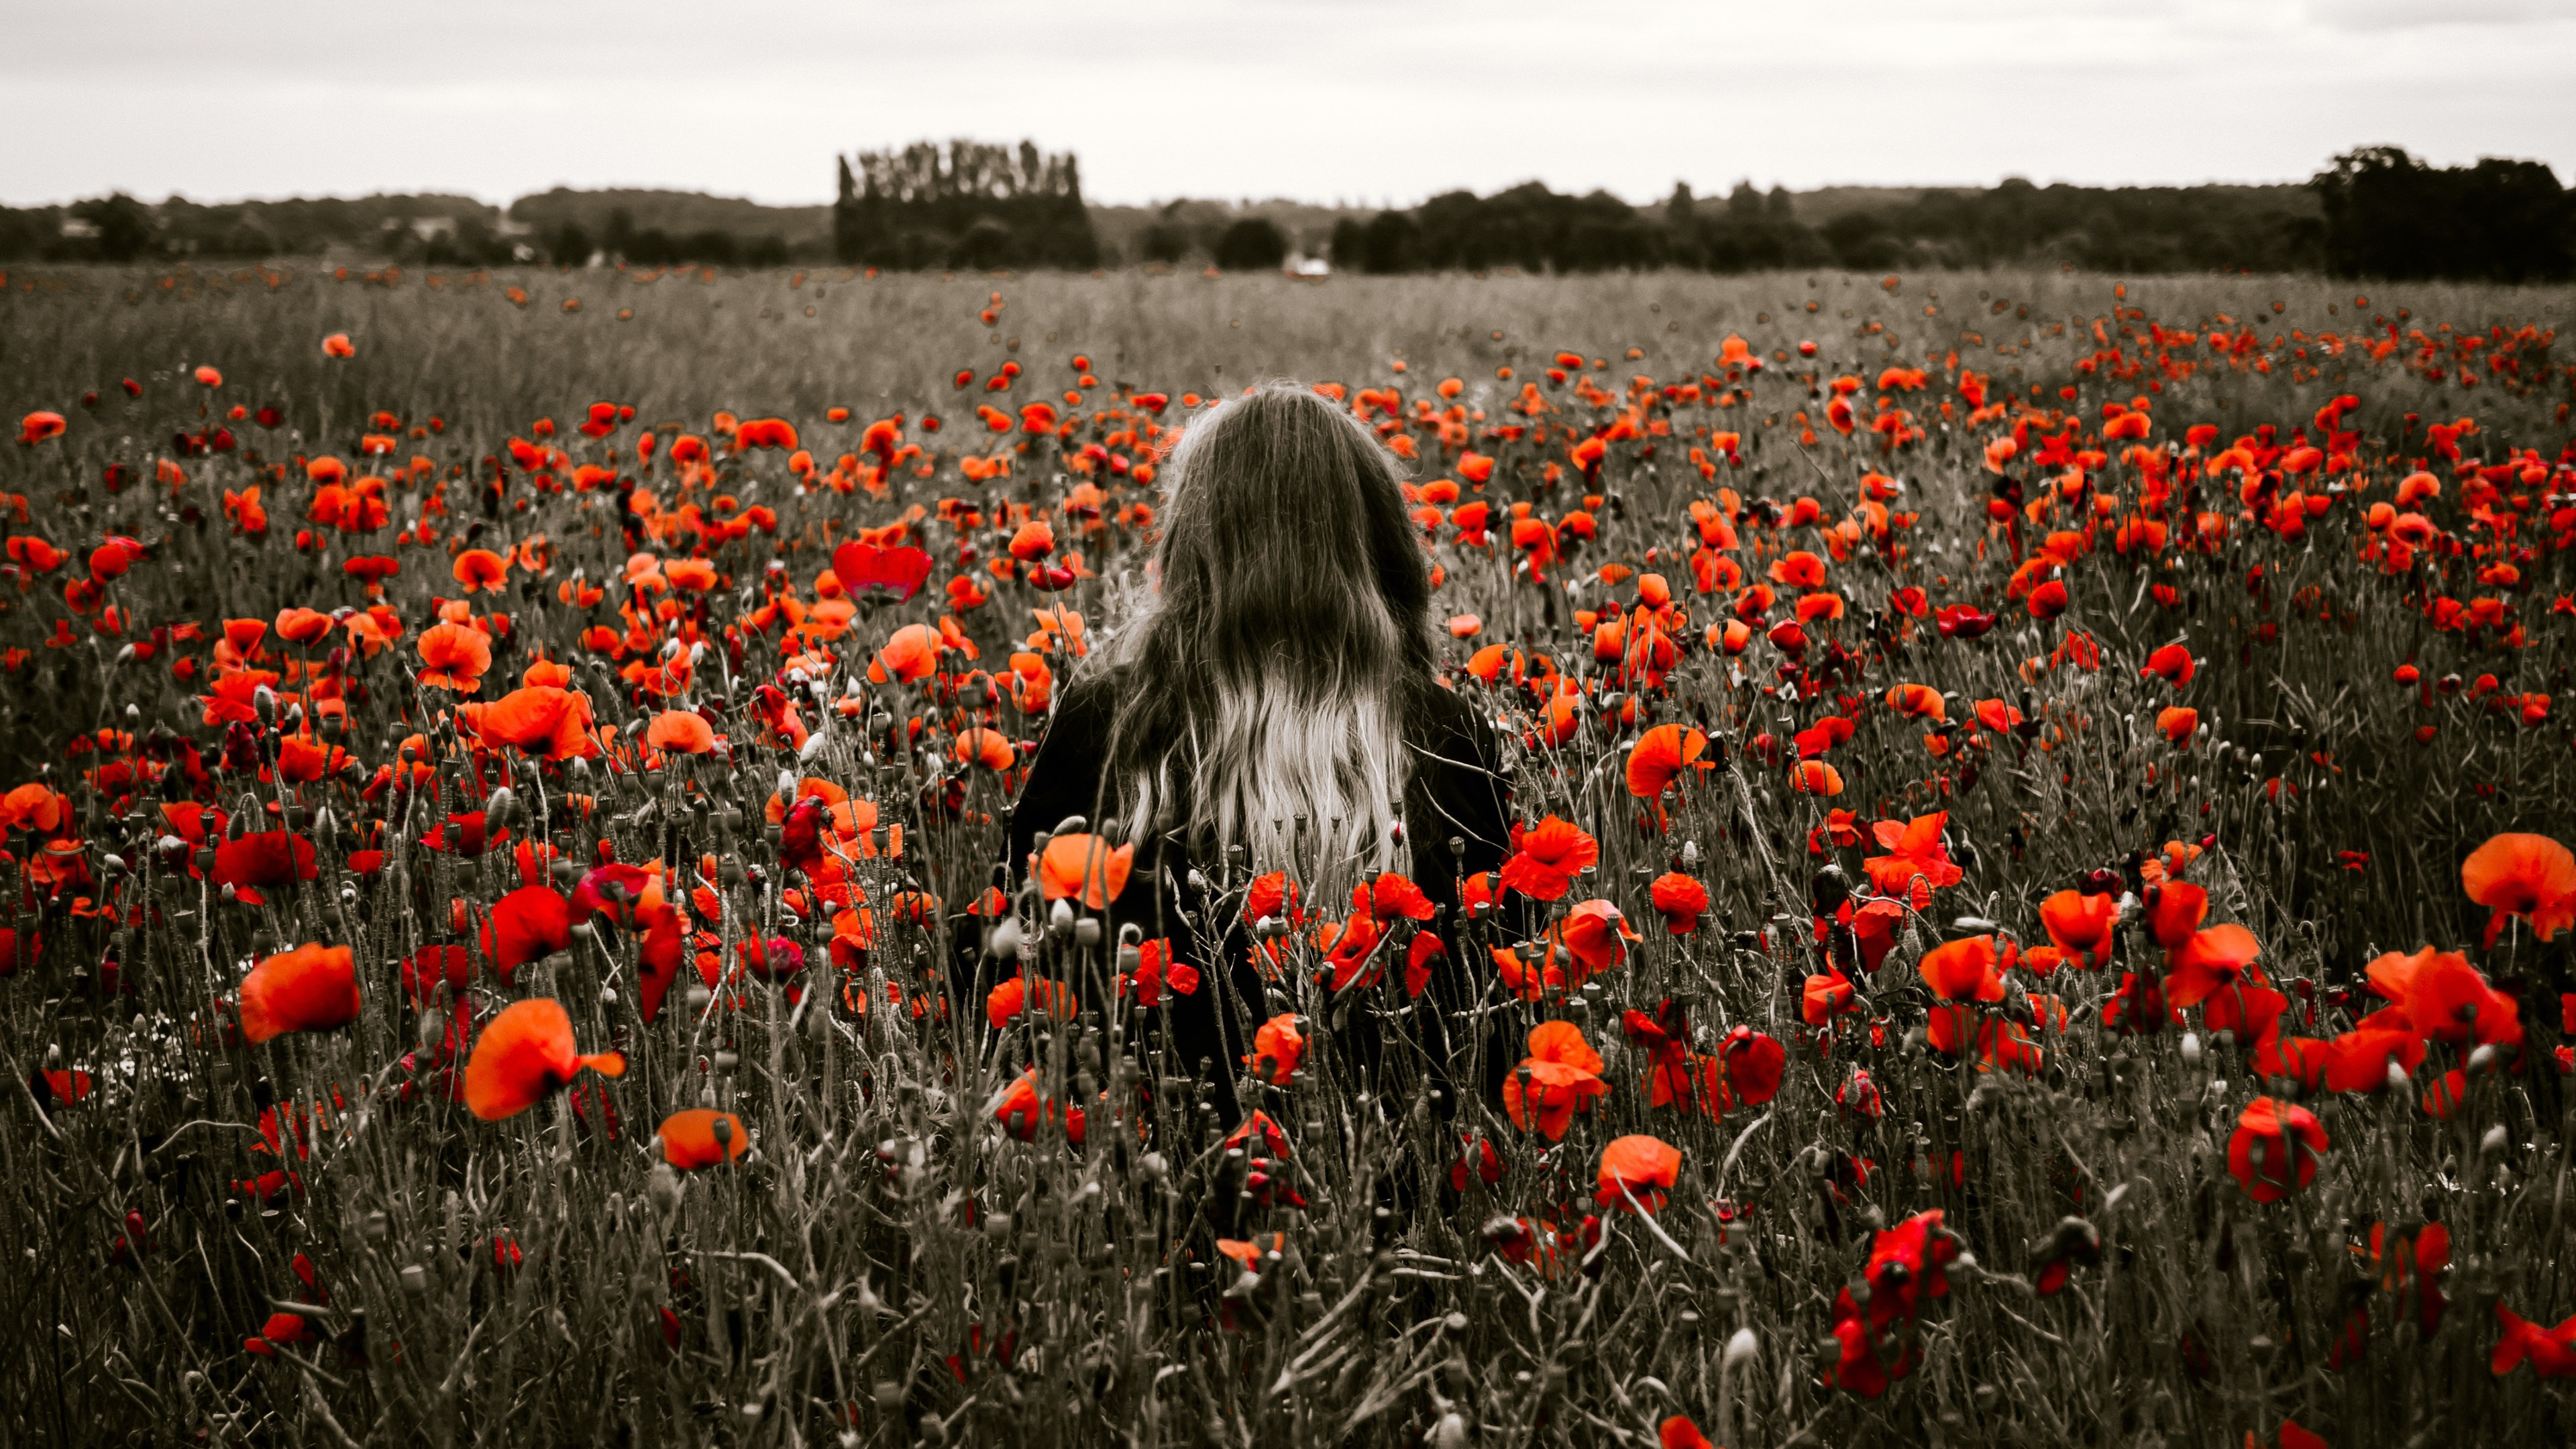 Girl in the field with red poppies wallpaper 3840x2160